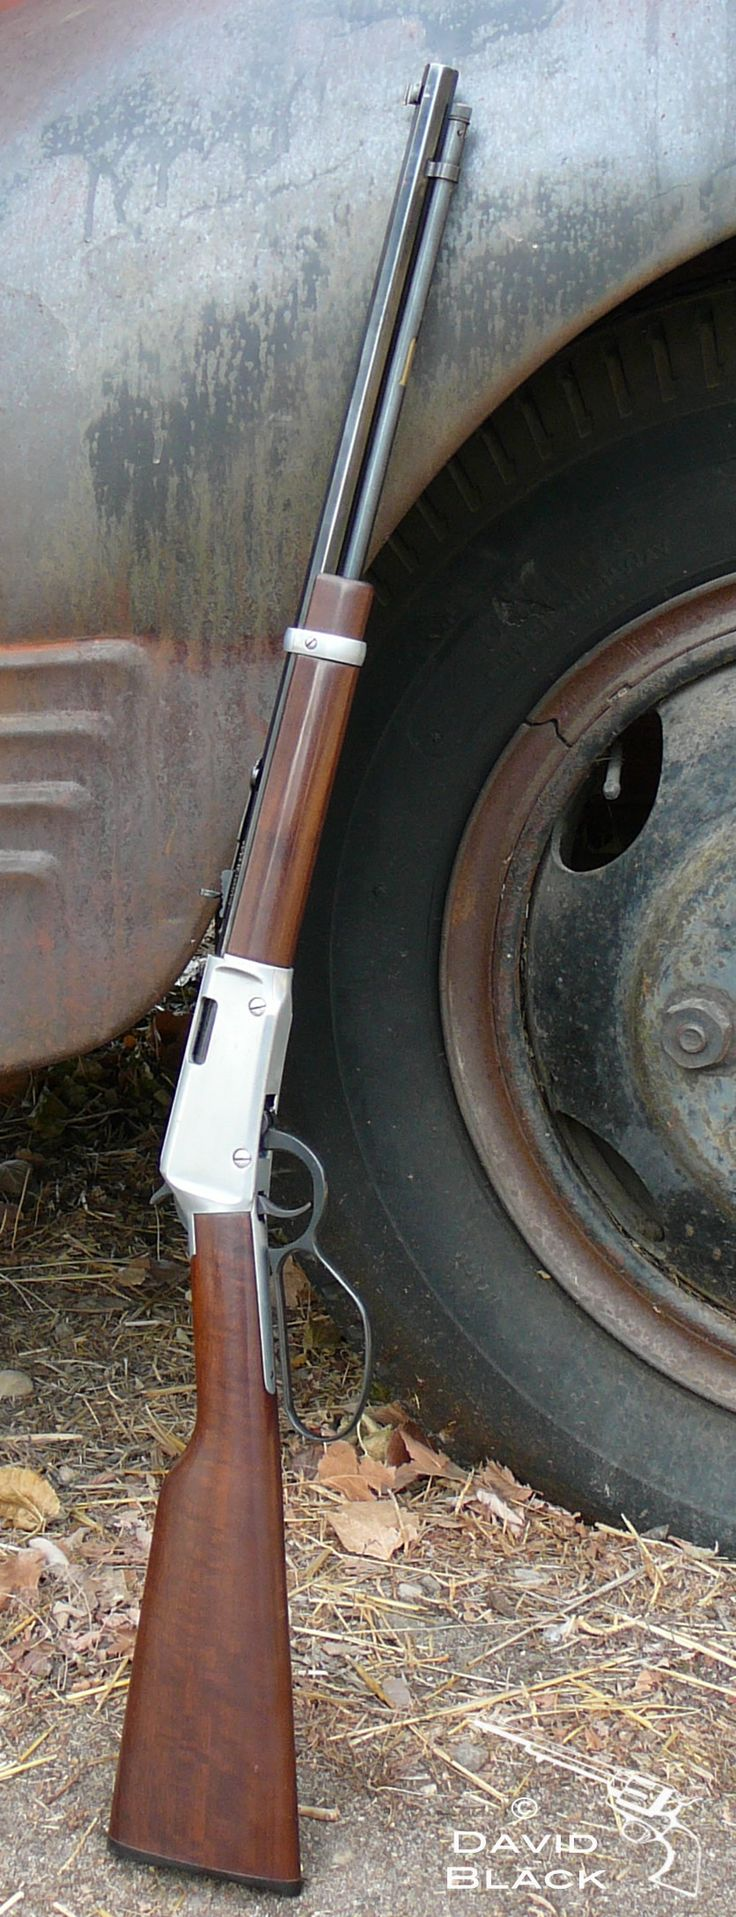 Henry Lever Action Rifle 22. Large loop lever and octagonal barrel. Love this gun. Old Dodge truck